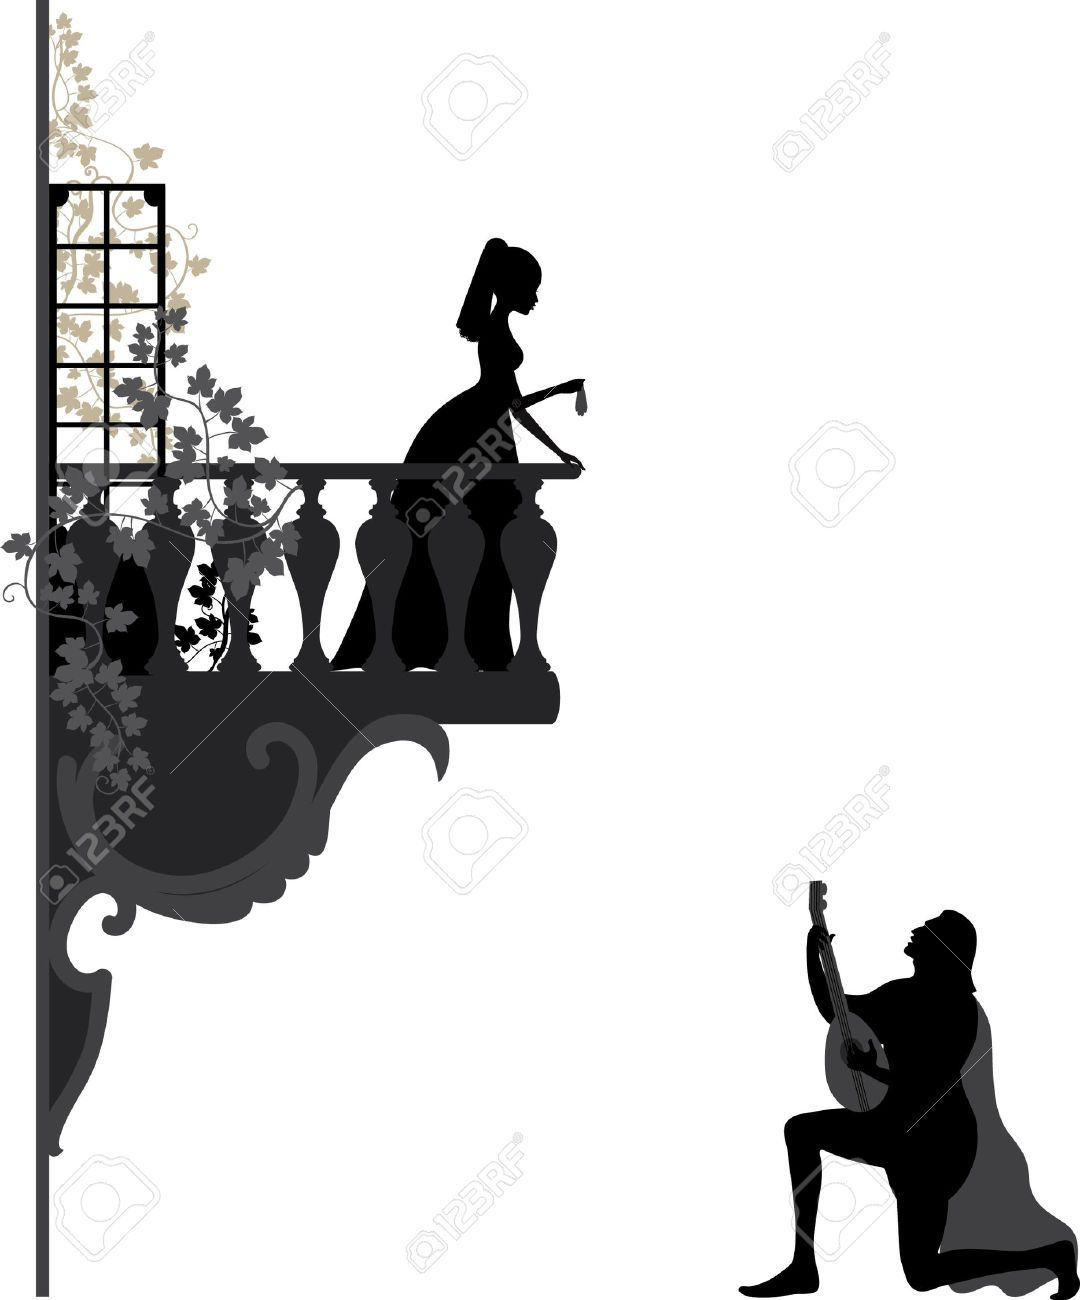 image result for silhouette of romeo and juliet engagement party rh pinterest co uk romeo and juliet characters clipart romeo and juliet characters clipart